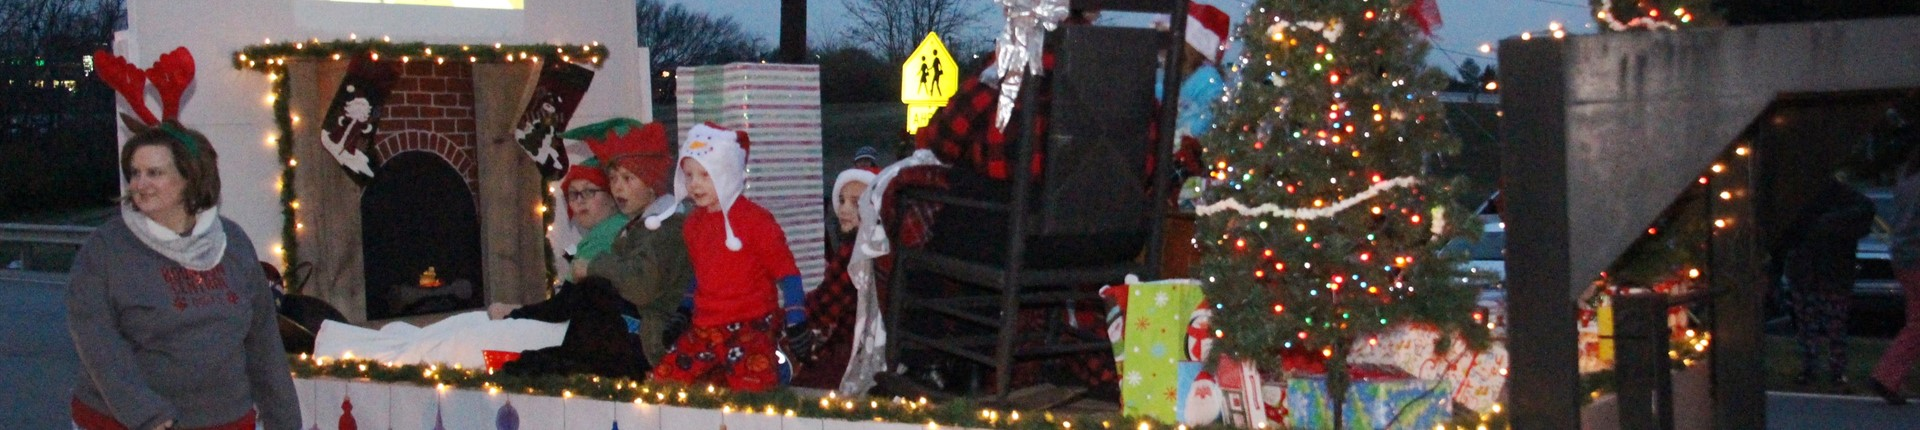 Bourbon Central Elementary Christmas Parade Float